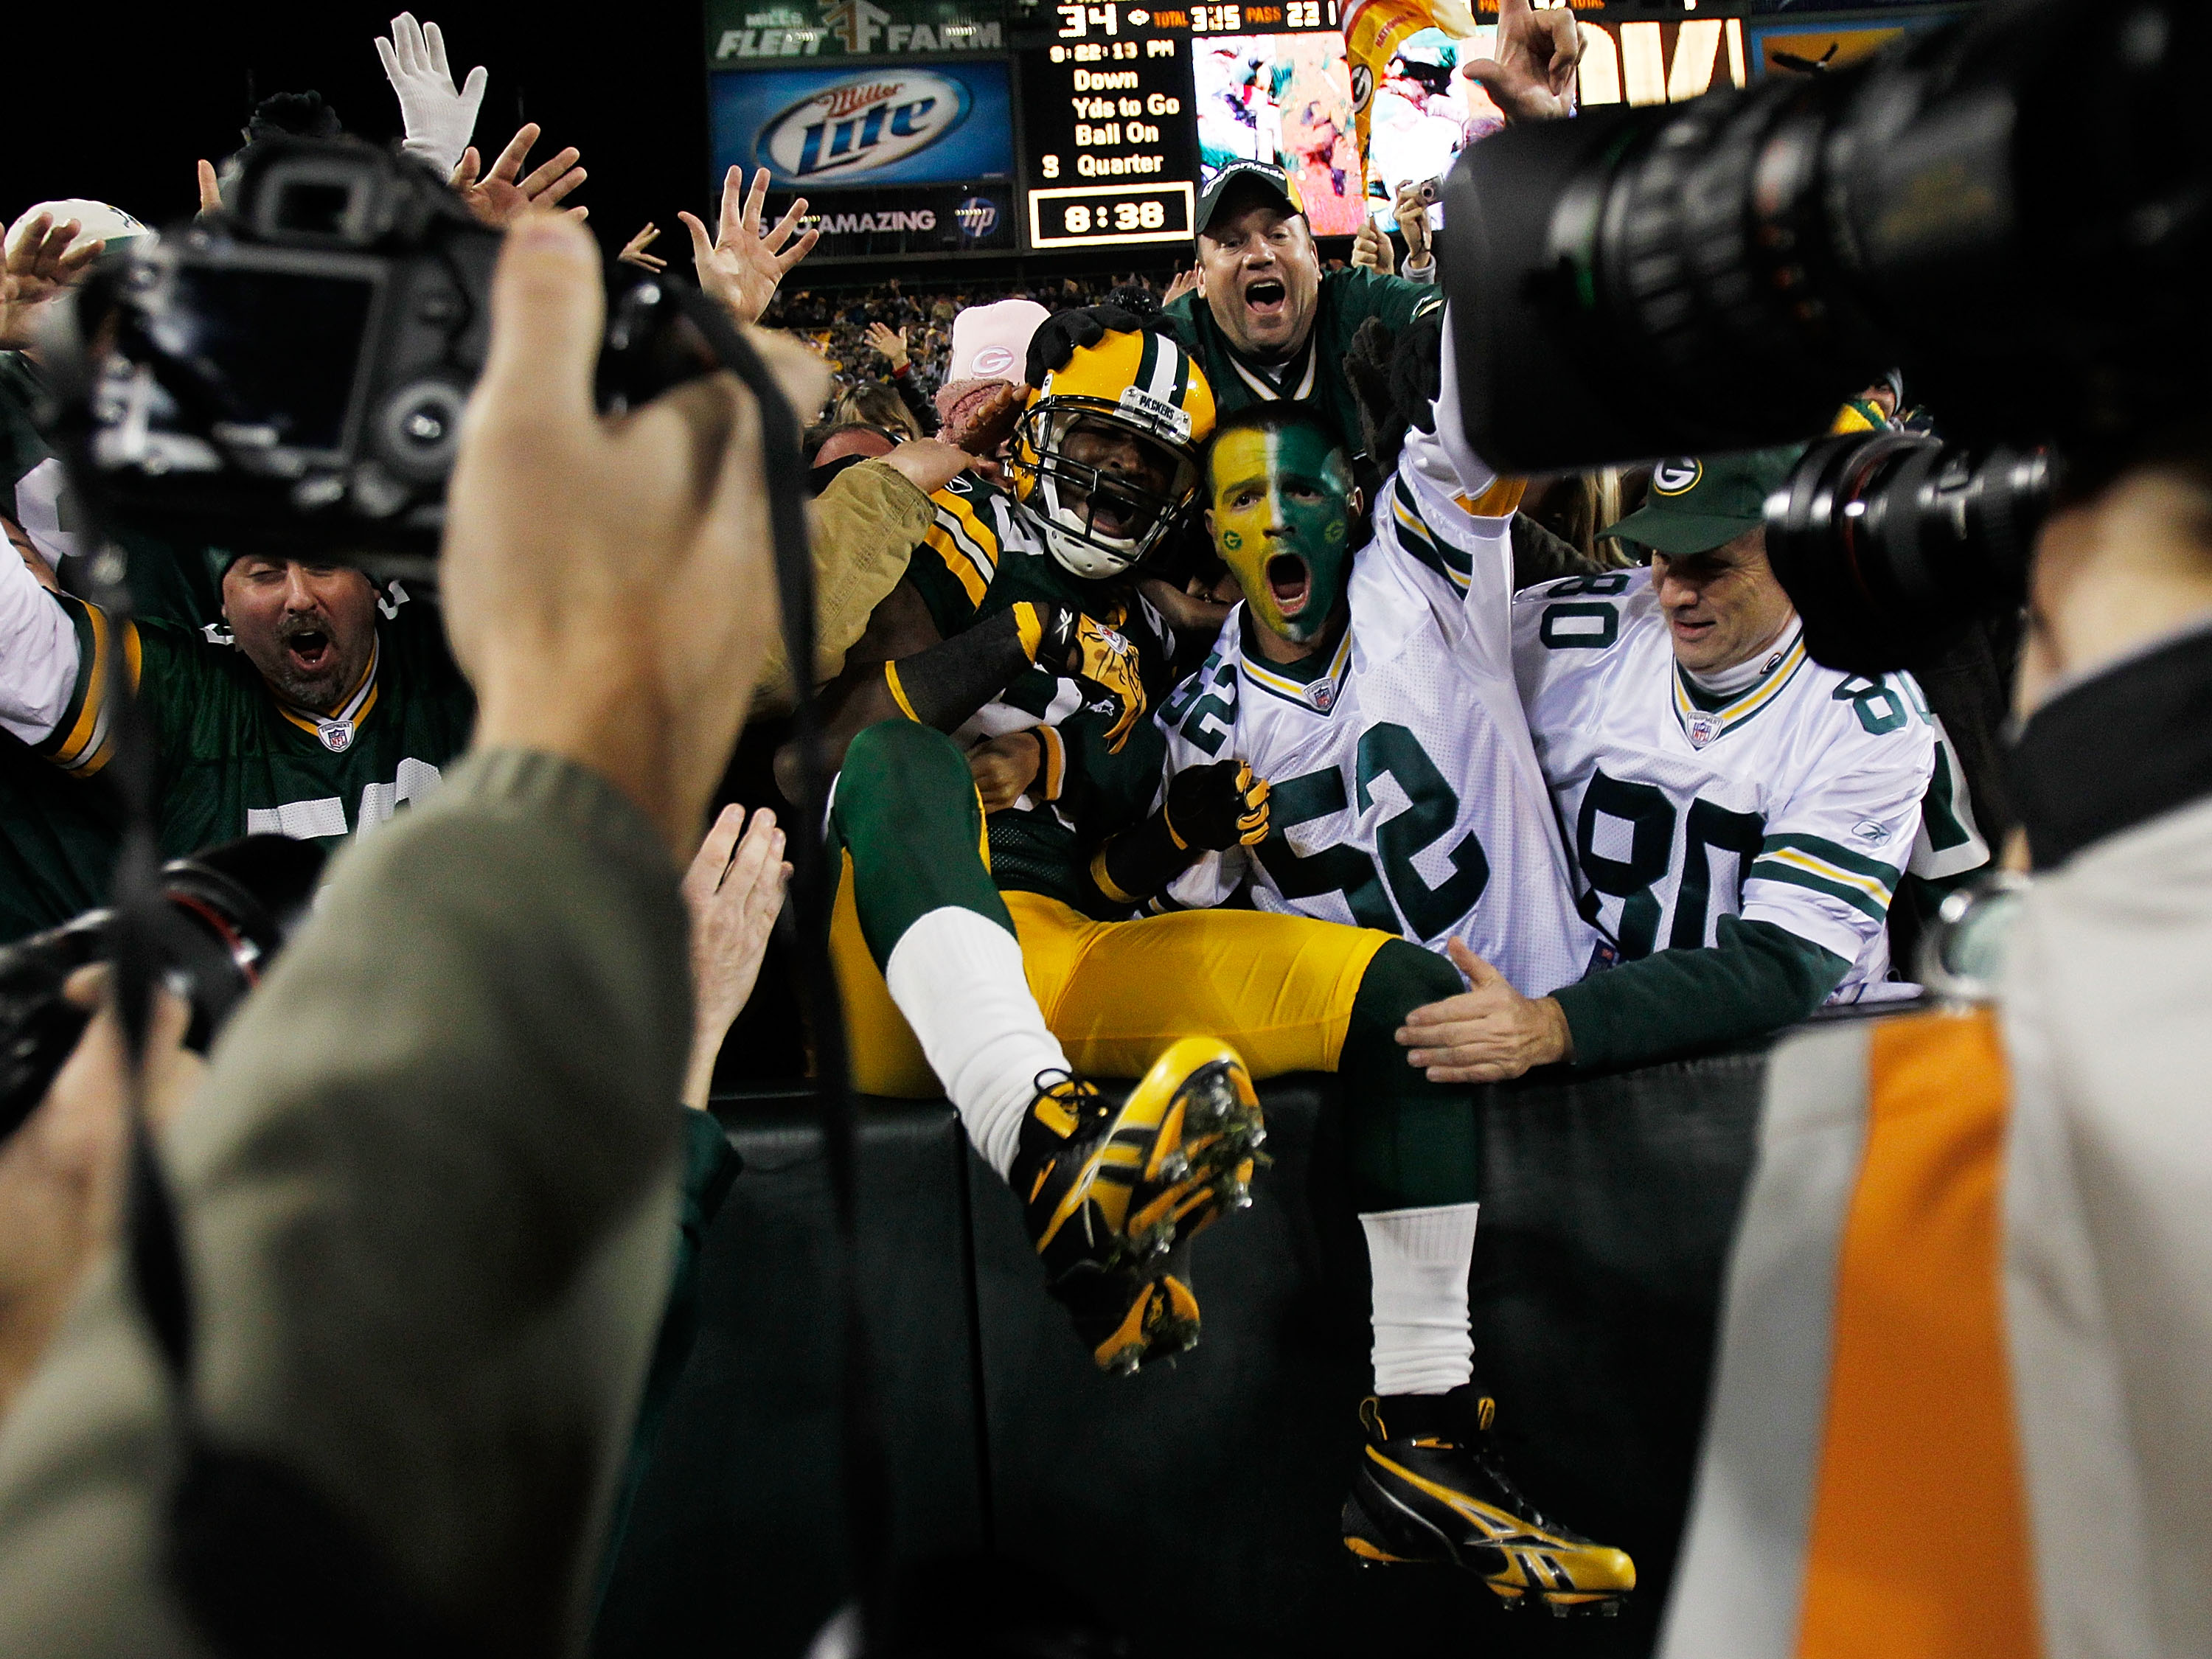 GREEN BAY, WI - NOVEMBER 07: James Jones #89 of the Green Bay Packers celebrates a touchdown with fans against the Dallas Cowboys at Lambeau Field on November 7, 2010 in Green Bay, Wisconsin. (Photo by Jonathan Daniel/Getty Images)